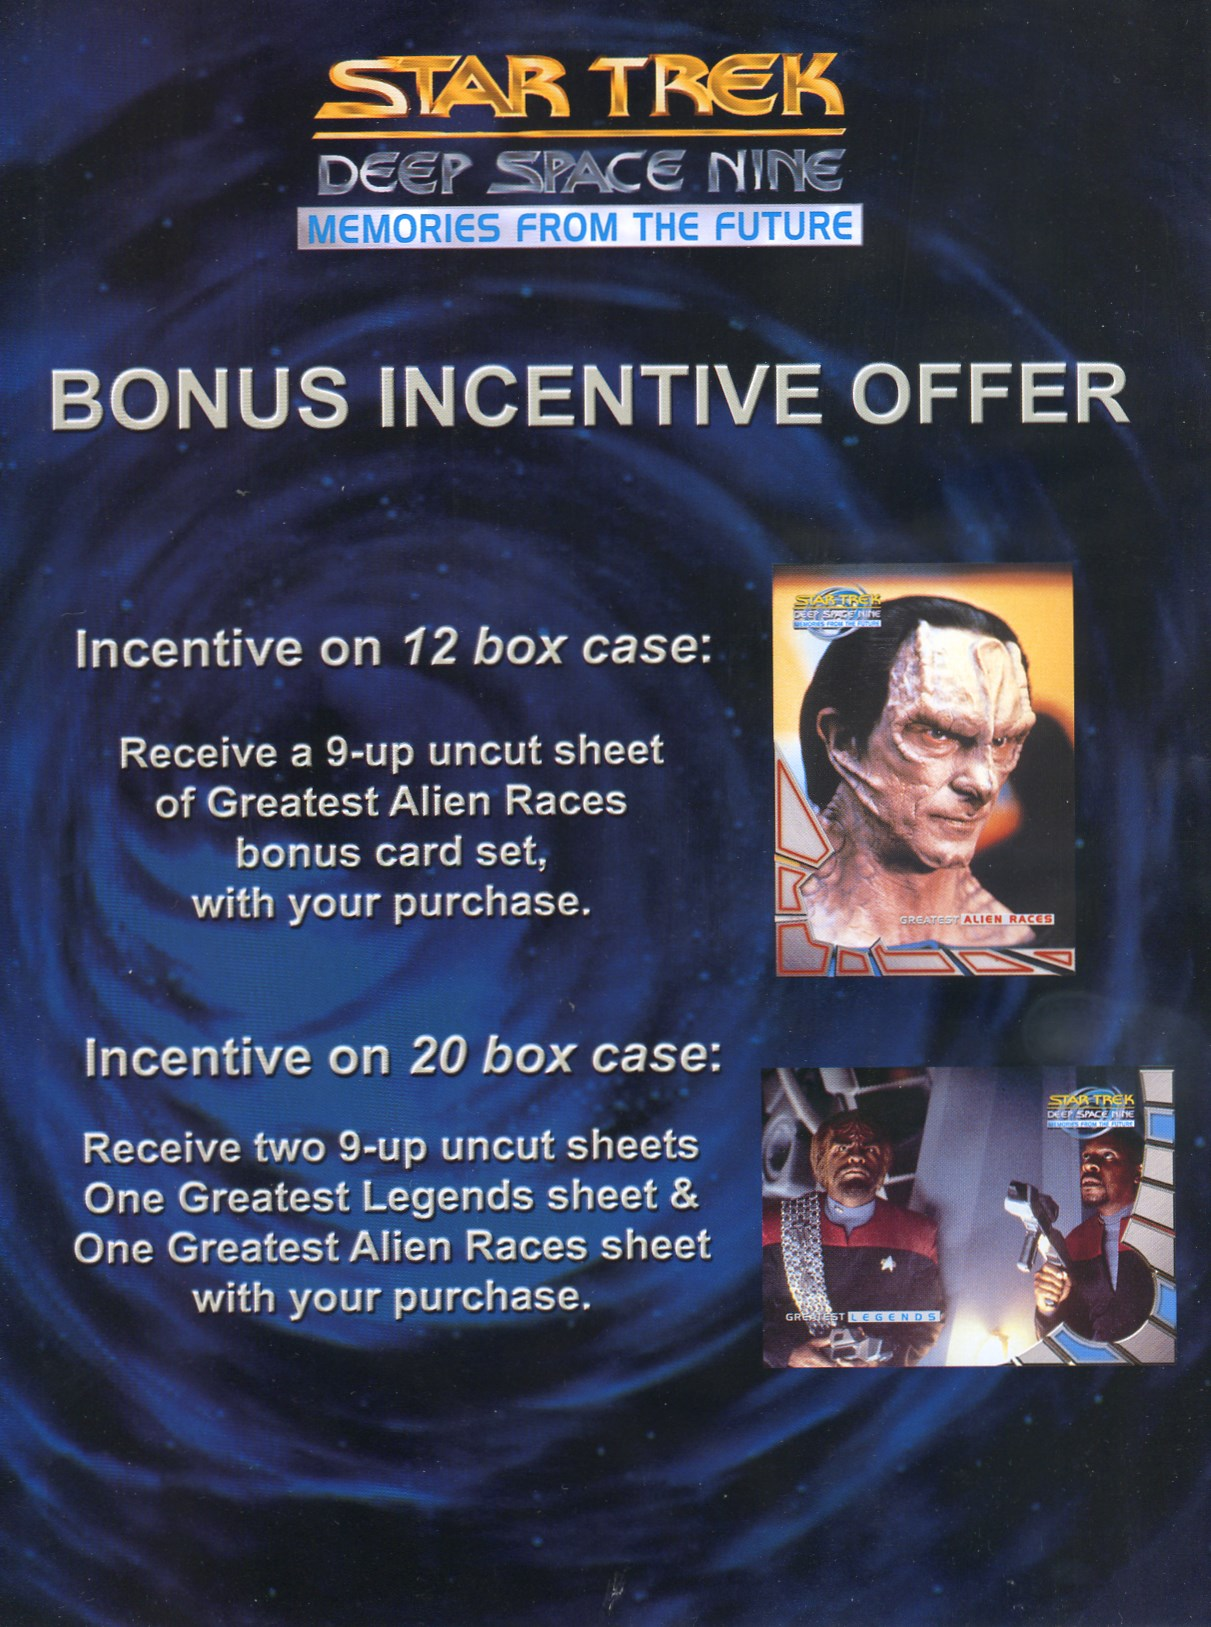 DS9 Memories from the Future Bonus Sell Sheet